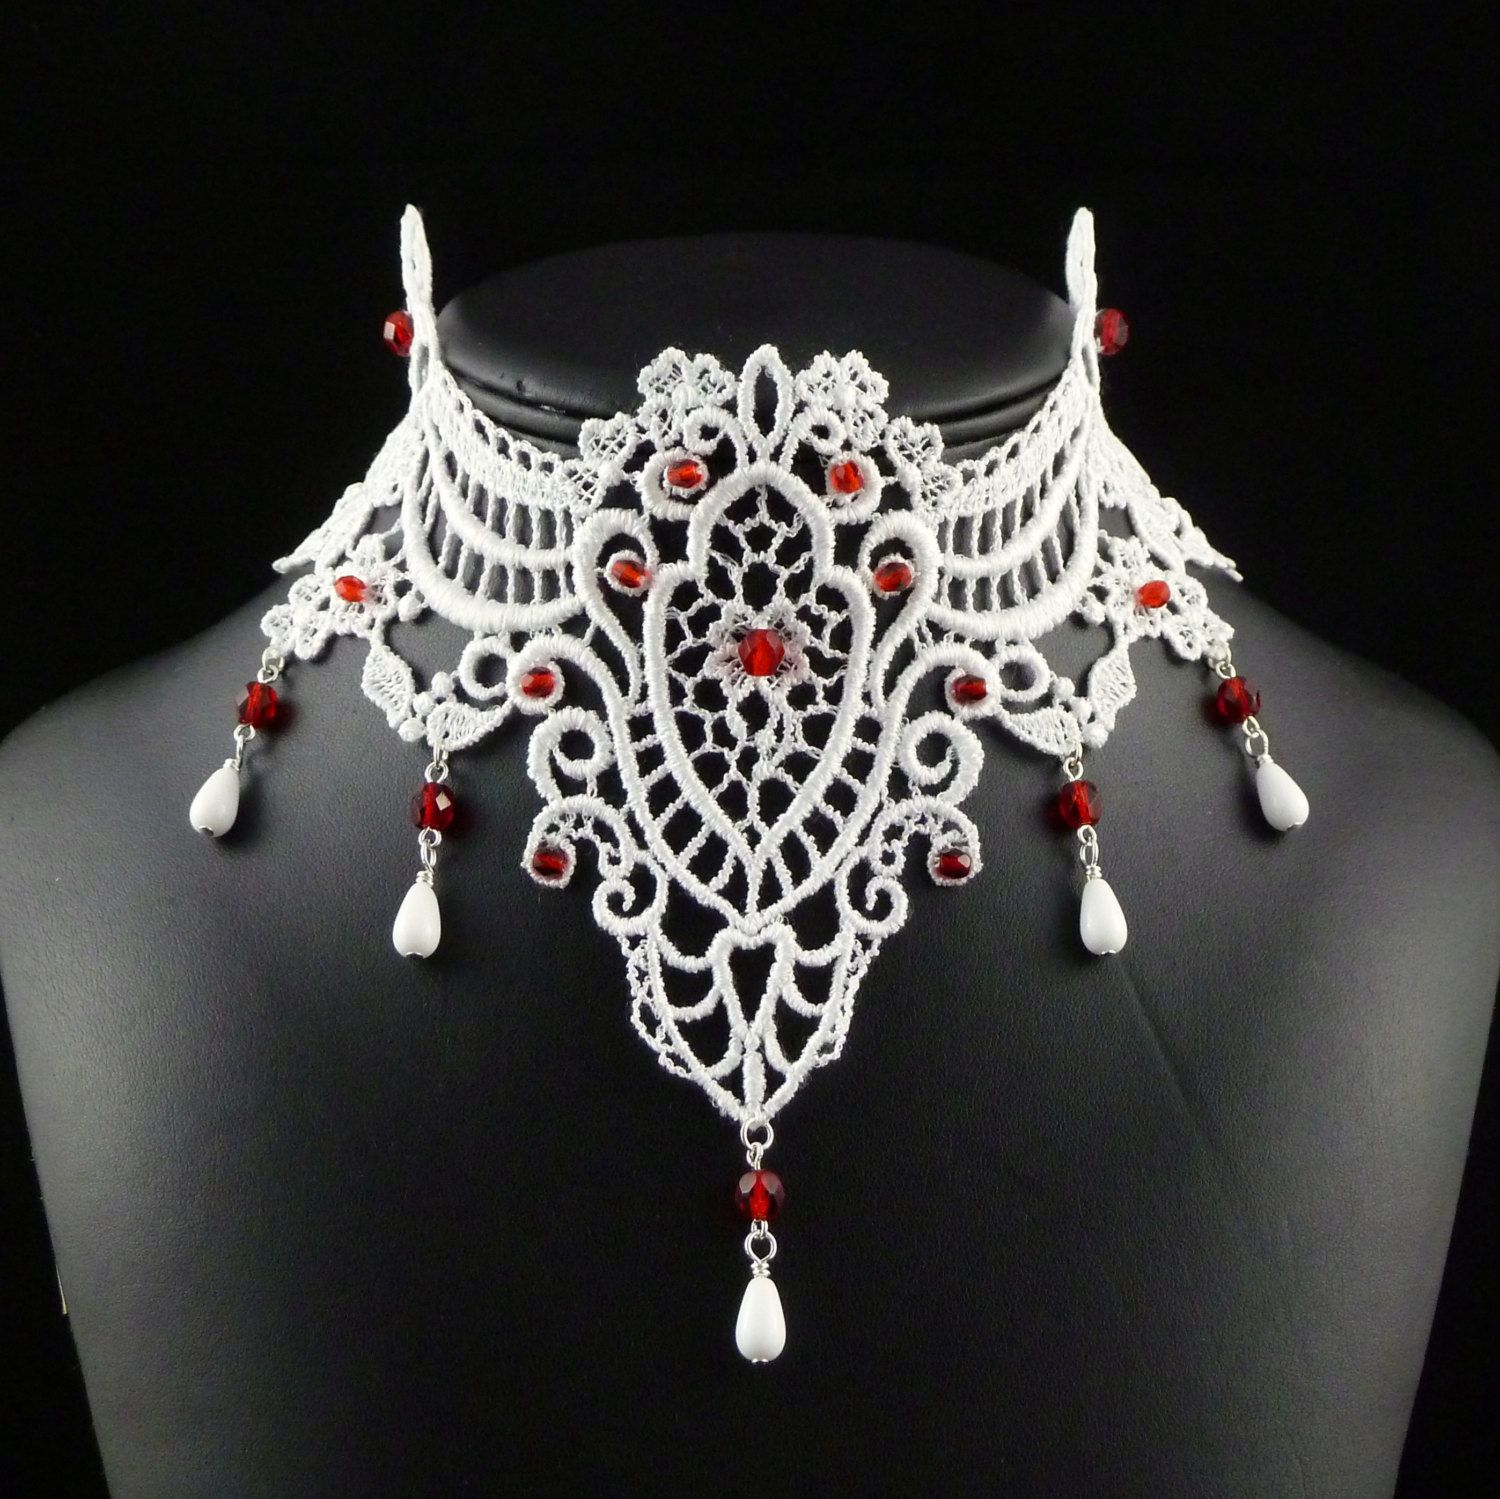 White Lace Choker Necklace with Red Glass Beads  - Victorian Bridal Jewelry for Women - Fabric Bride Chocker. $78.00, via Etsy.